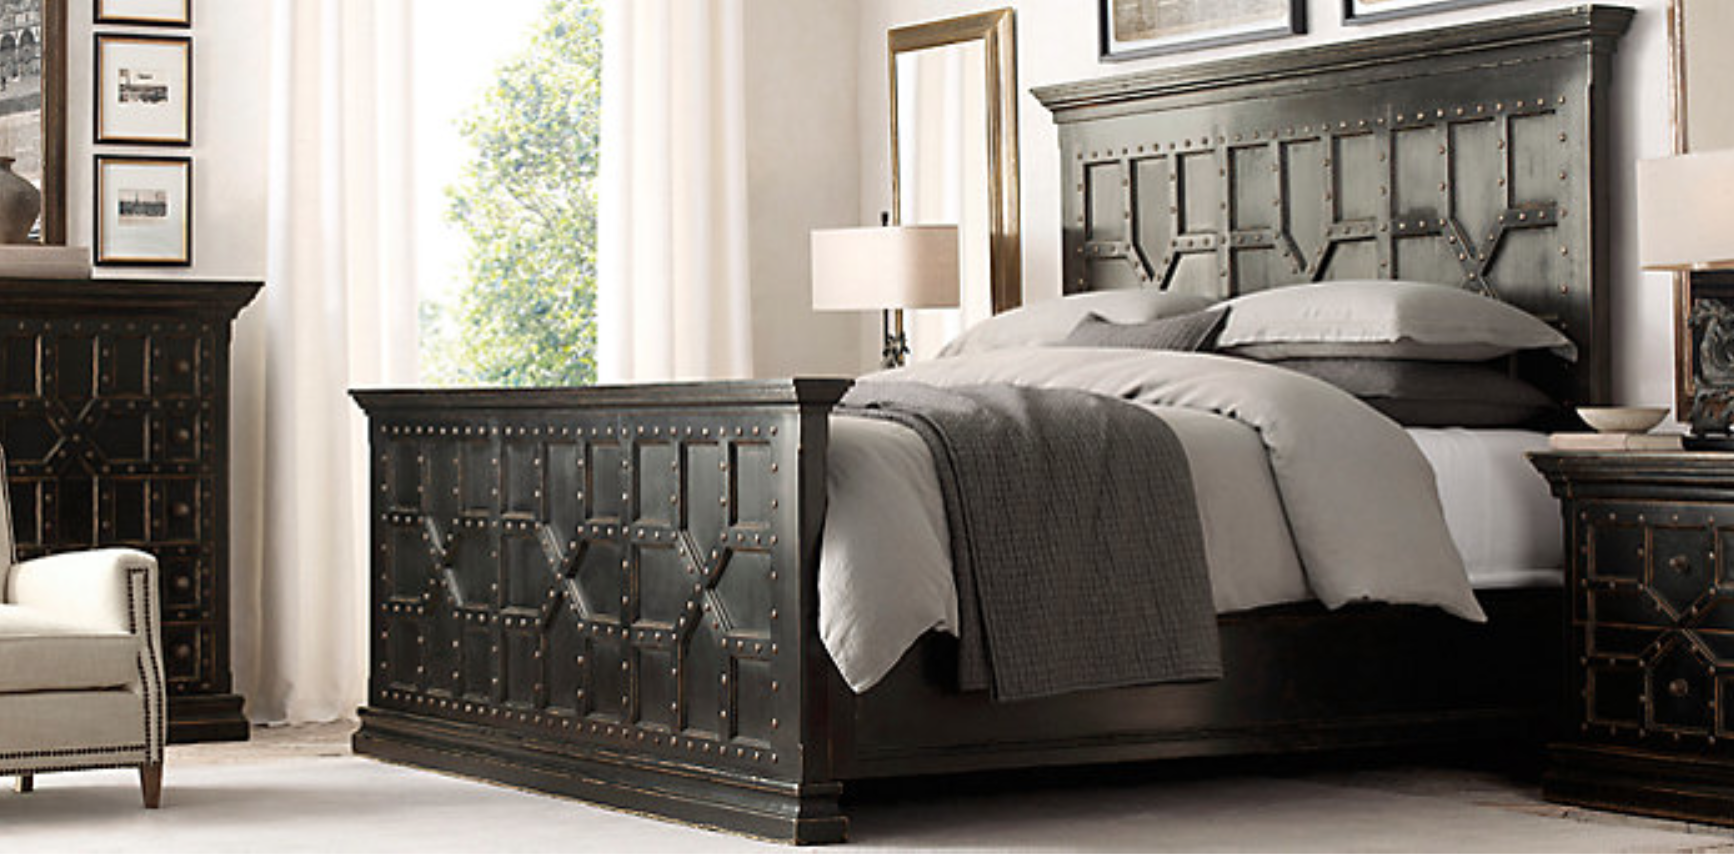 Restoration hardware bedroom - Restoration Hardware 17th C Castello Bed Shown In Antiqued Black Walnut Finish